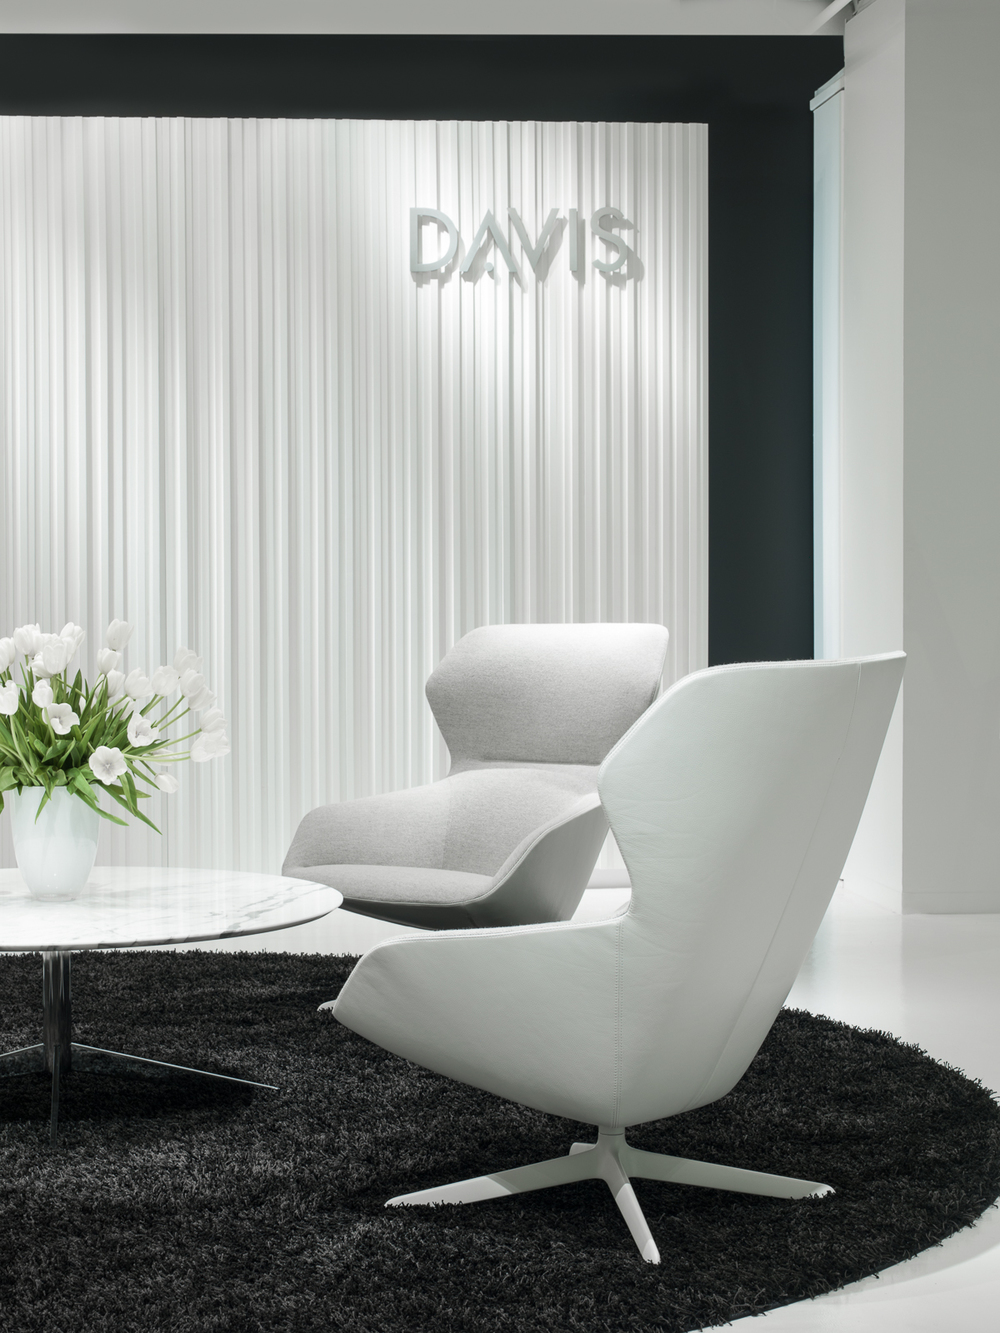 davis_furniture-1.jpg